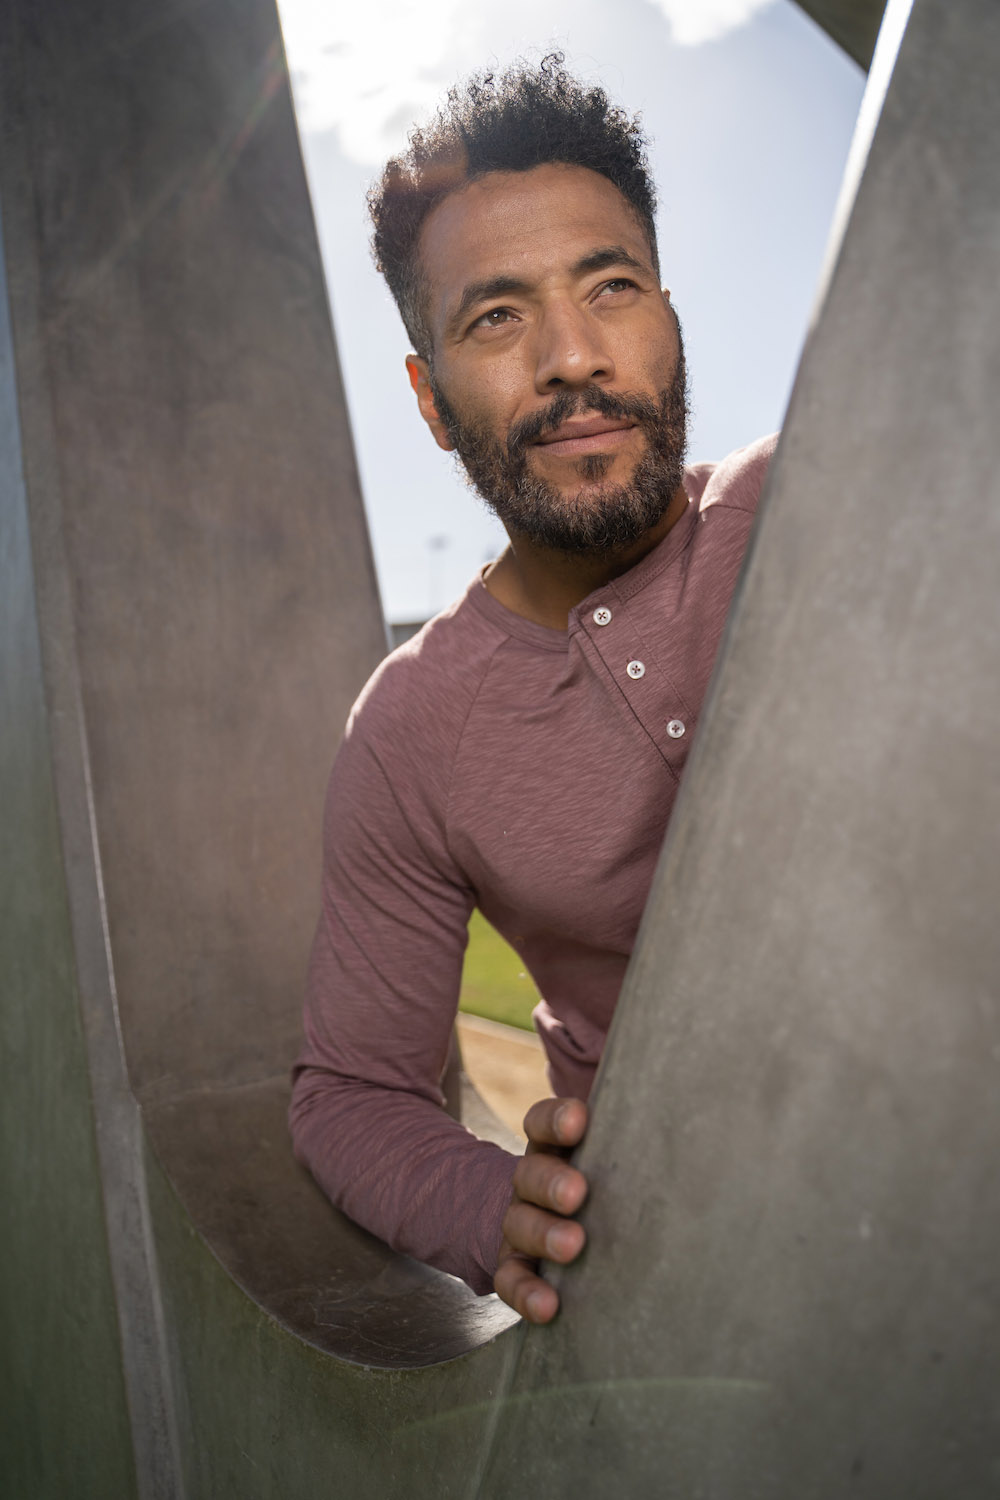 Lifestyle-On-Location-Model-Onmodel-Damion-Lloyd-Photography-Commercial-Product-Apparel-Clothing-Los-Angeles-Orange-County-male-man-GLYDER-sportswear-outdoor-city-sunshine-park-downtown